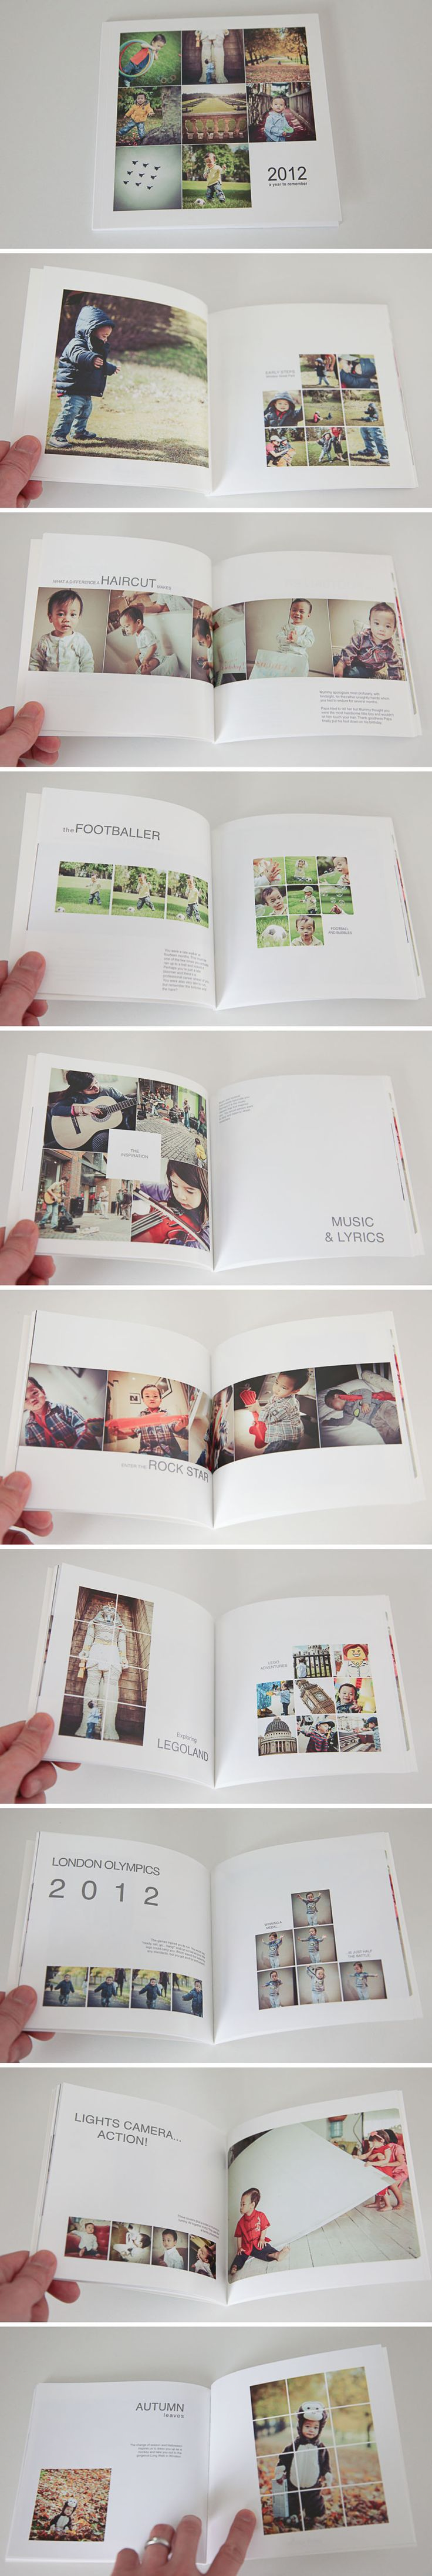 Instagram-inspired photobook